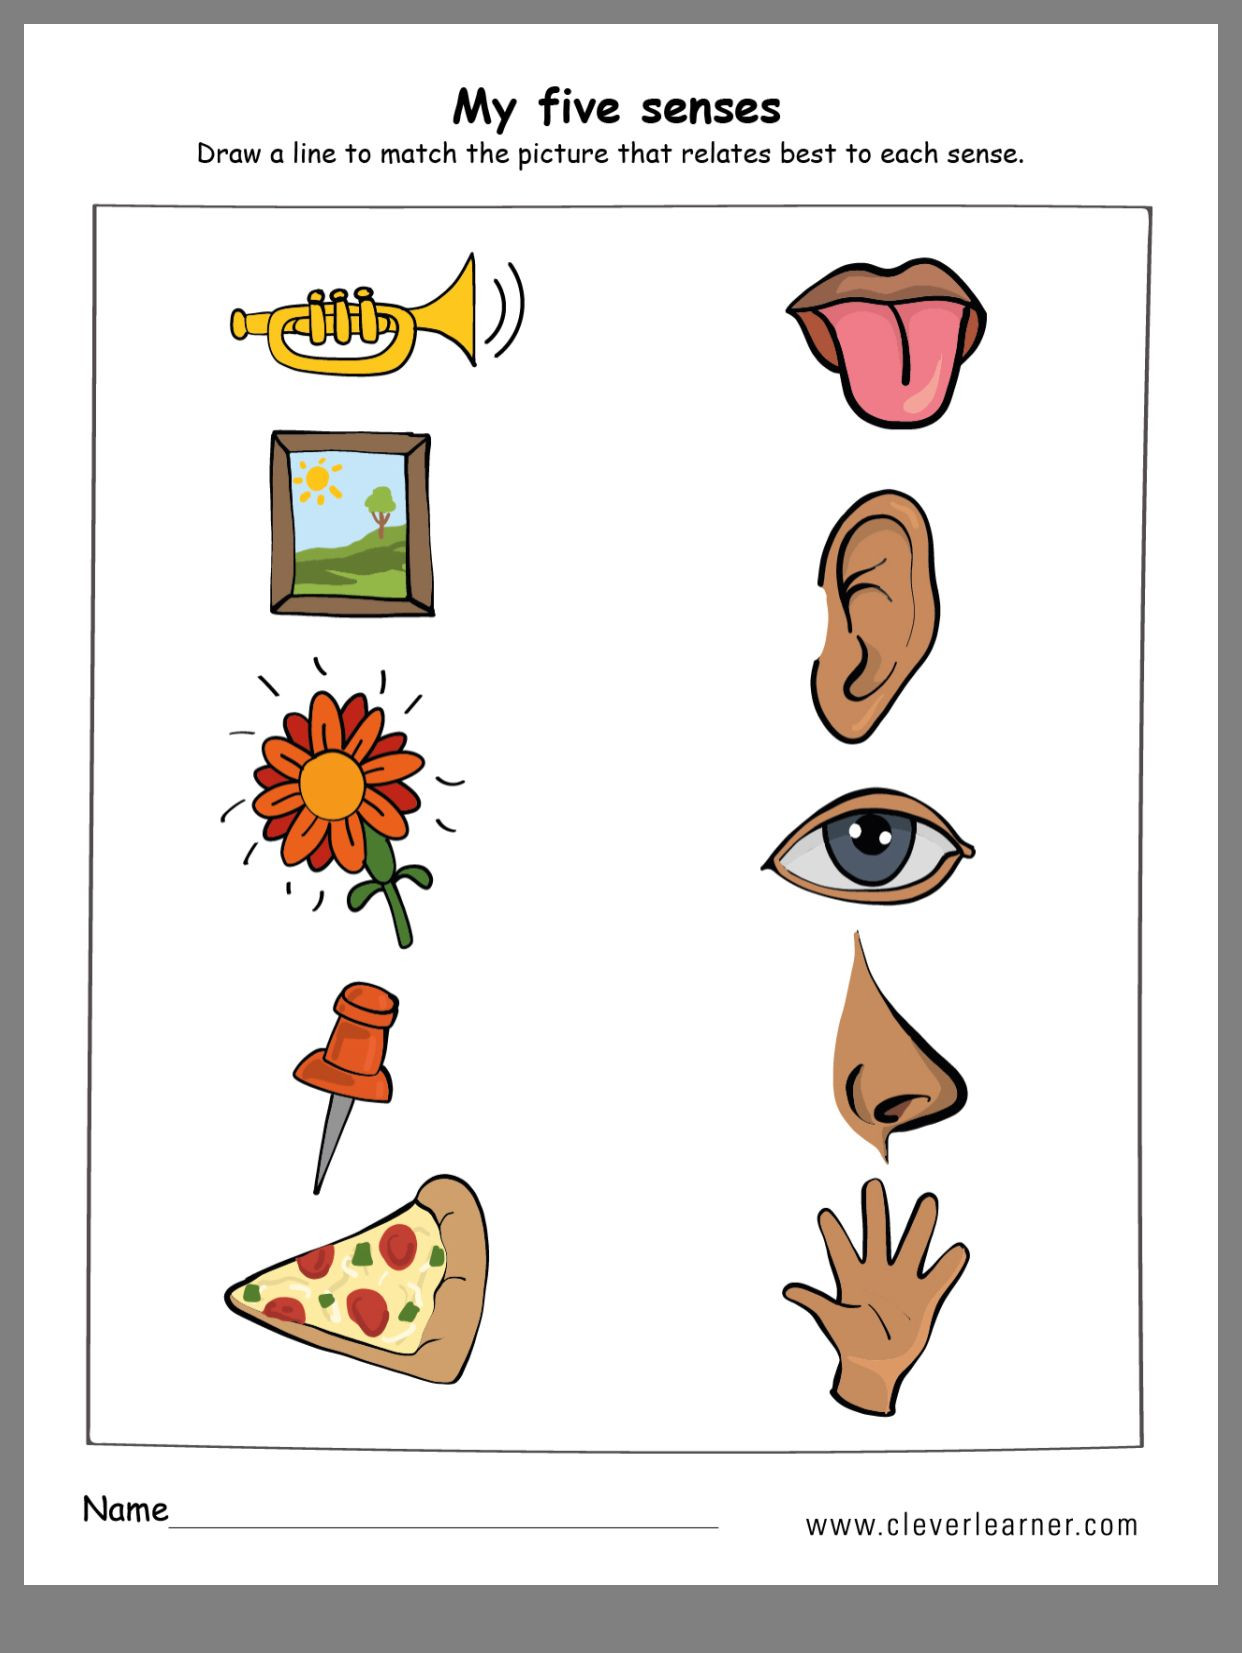 5 Senses Worksheets Preschool Pin by Step by Step Child Care & Pres On Preschool 5 Senses